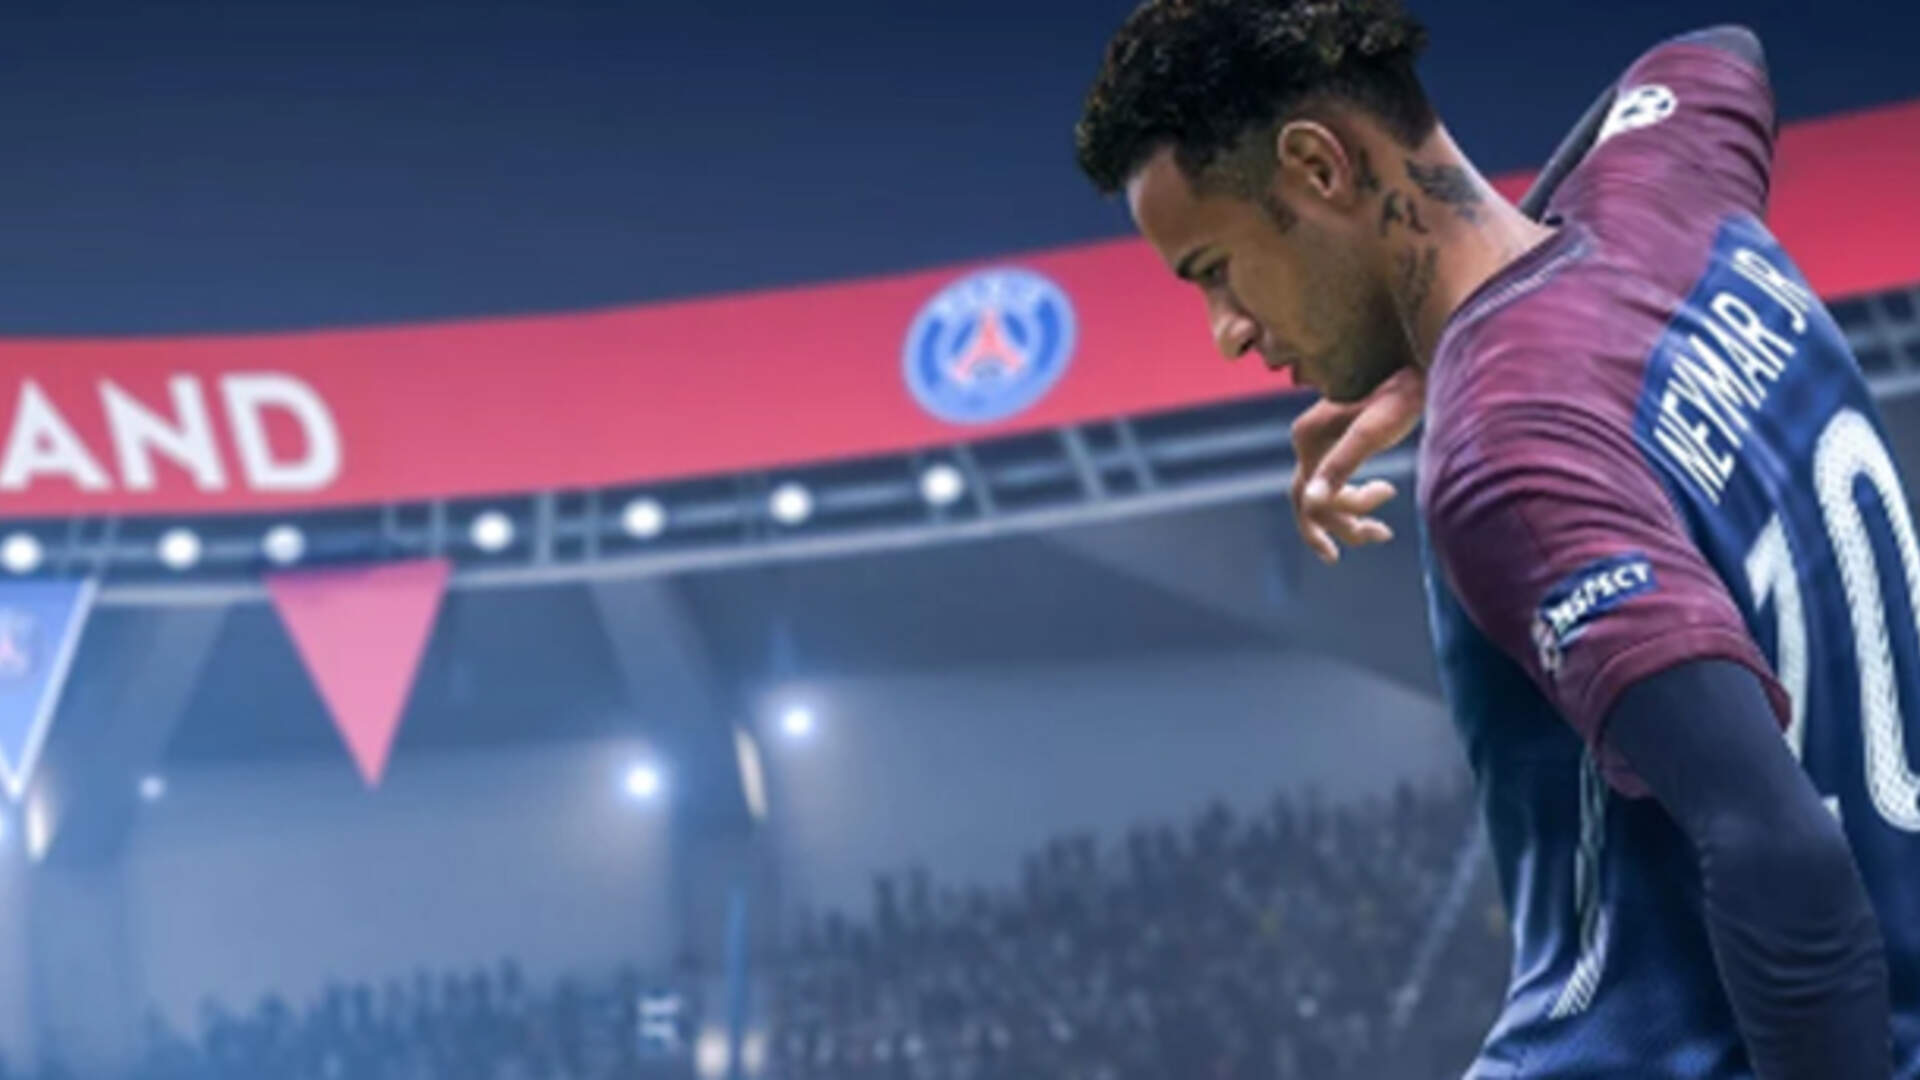 FIFA 19 Kick Off Mode Trailer Shows Off New Options, Including Long Shots Count Double